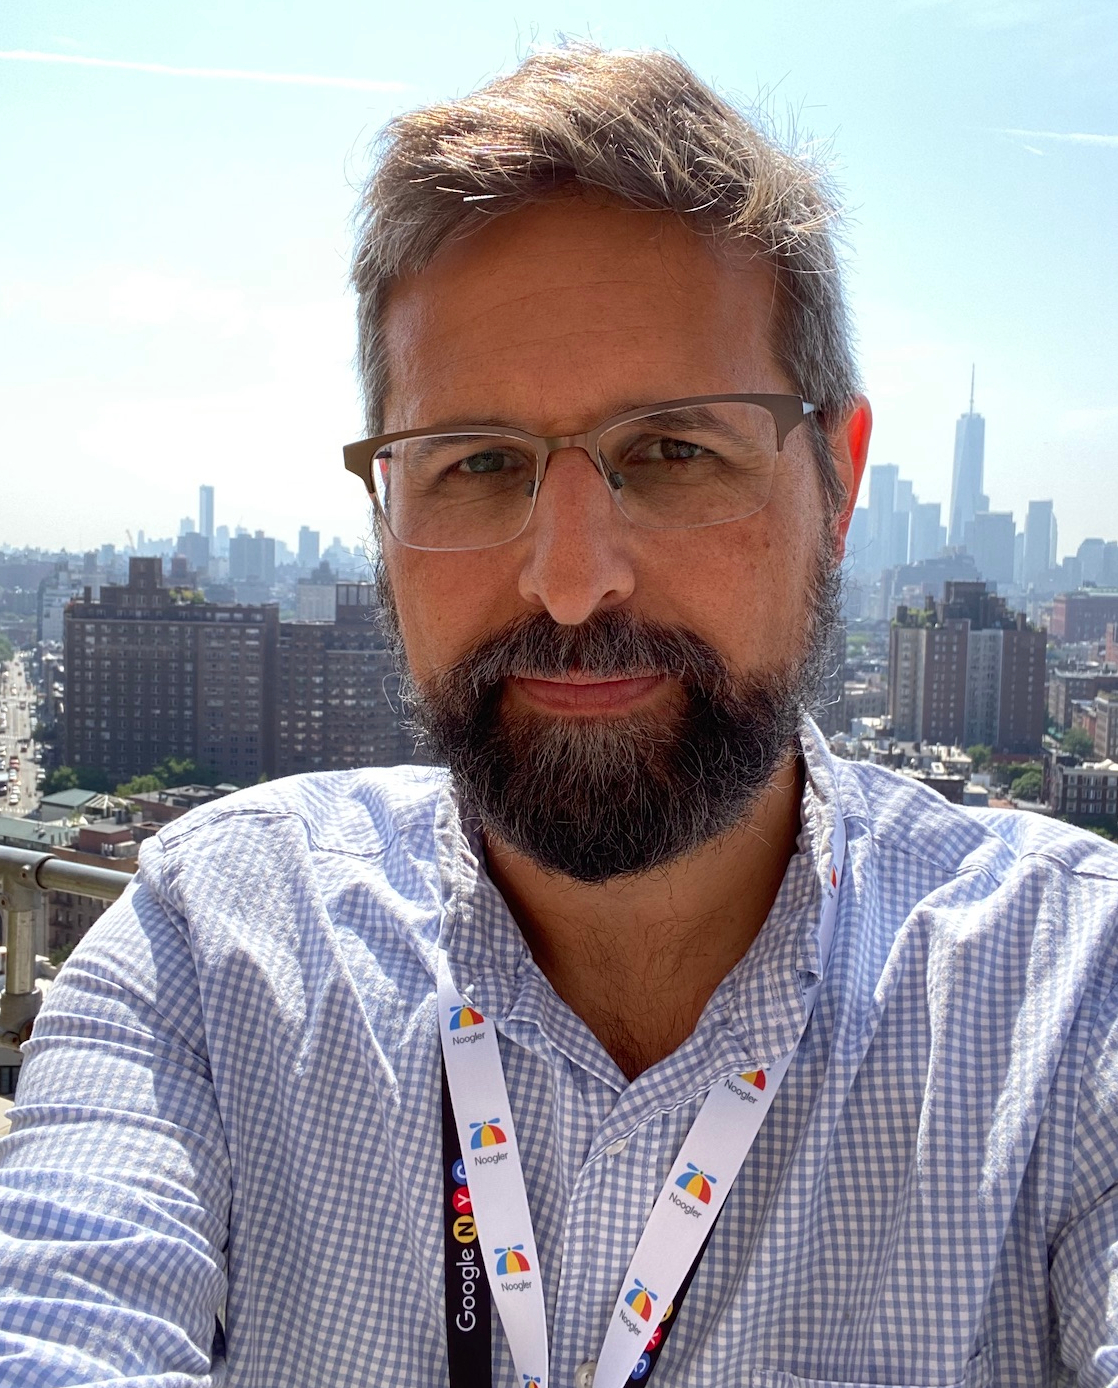 Selfie of Jeff on his first day at Google NYC, on the terrace with the Freedom Tower in the background